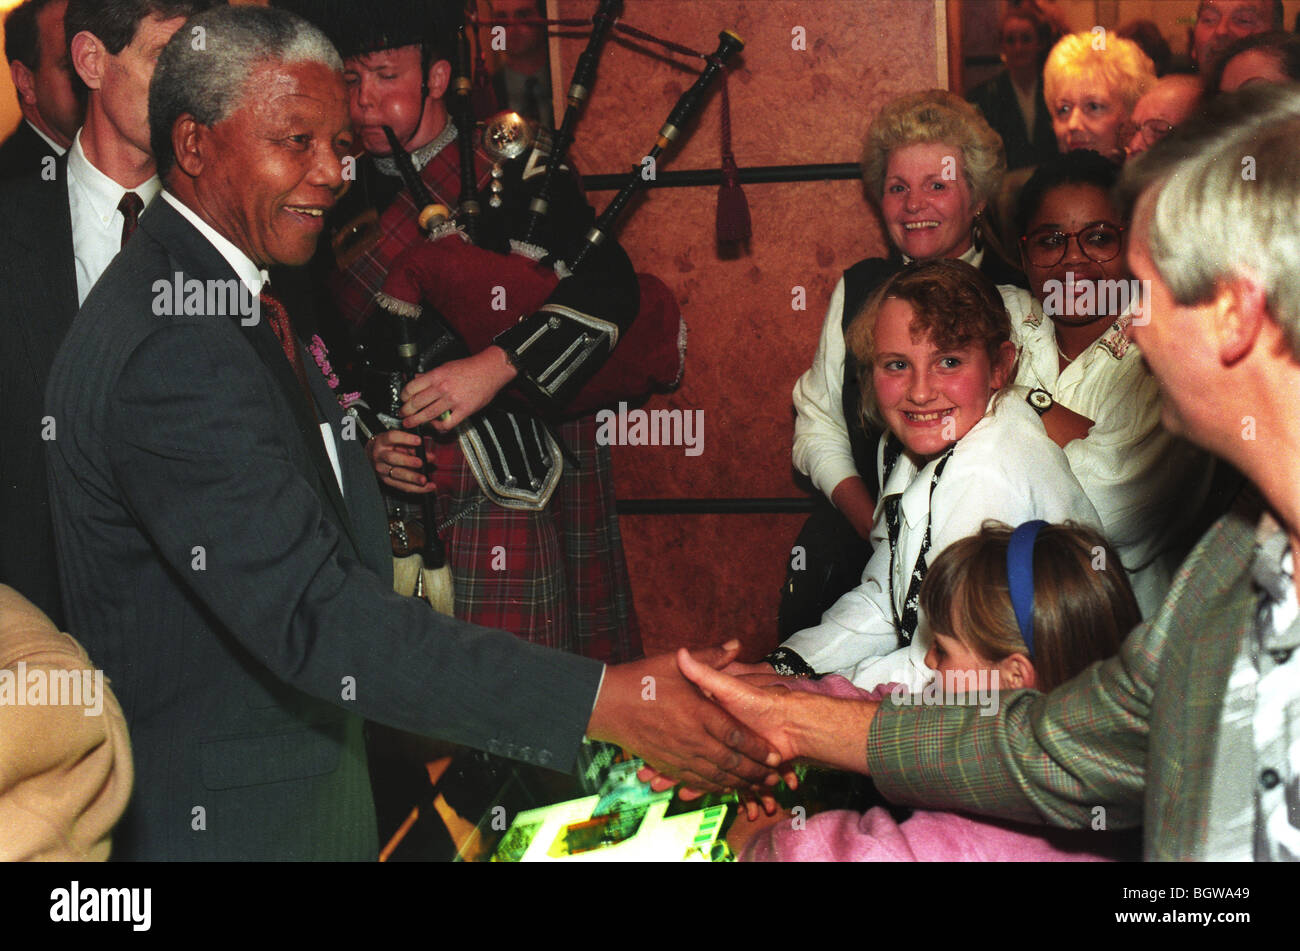 Nelson Mandela arrives at Hilton Hotel, Glasgow, Scotland, on 9th October 1993. - Stock Image